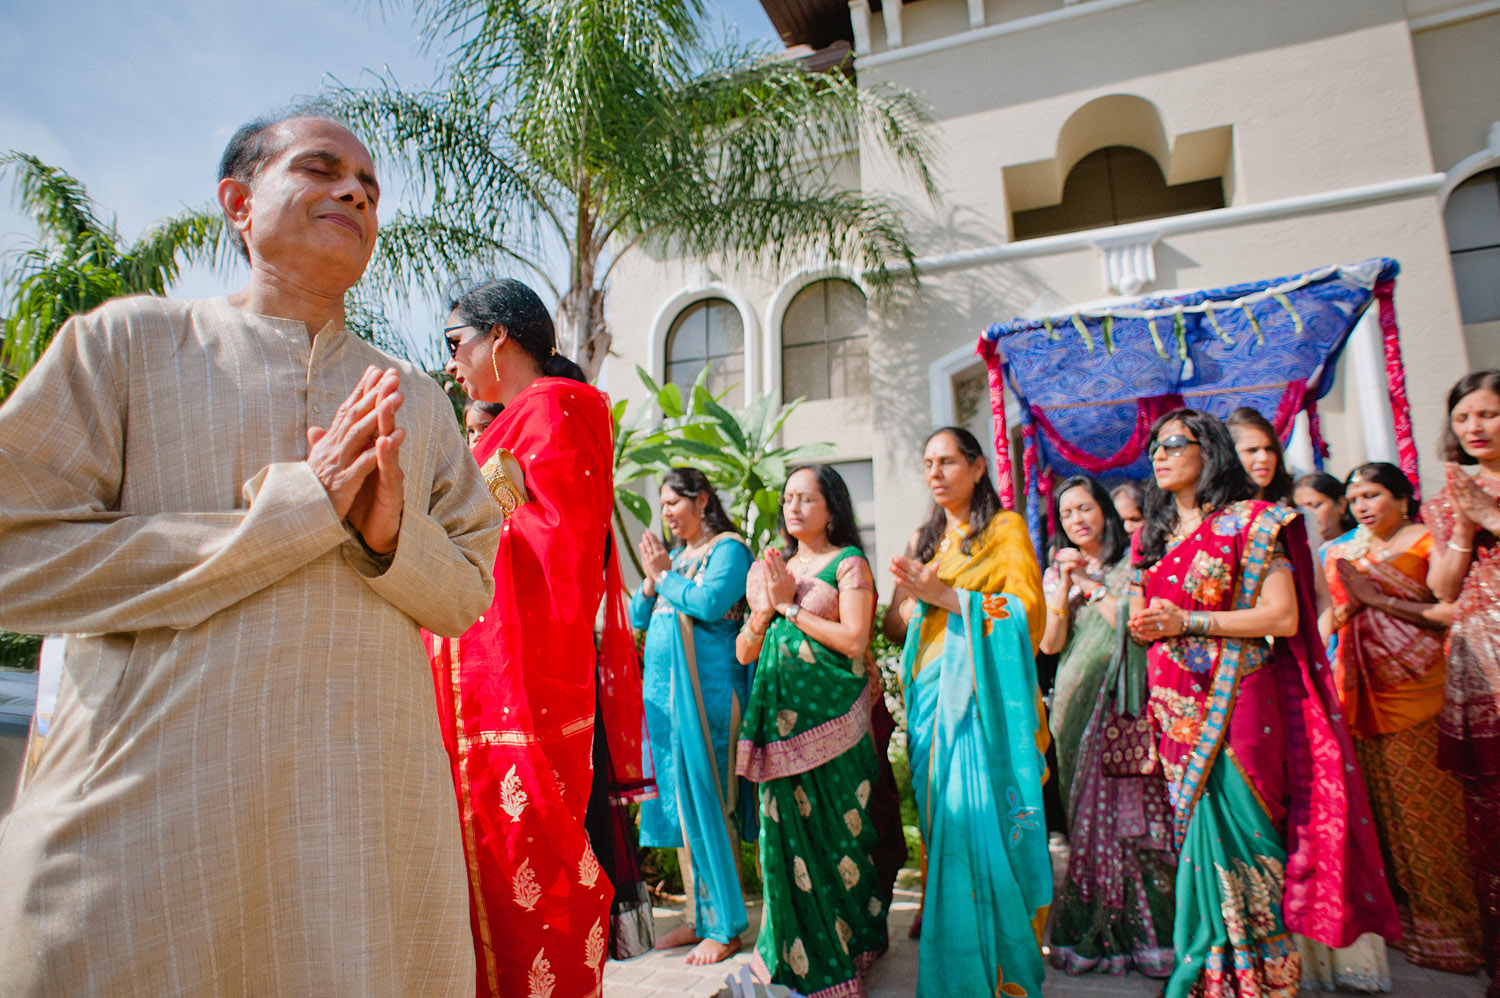 father prays during this pithi ceremony at this hindu wedding in palm coast florida while Destination Wedding Photographer Lexia Frank - a top indian wedding photographer - photographs the day on film because she is a film photographer for indian weddings who still shoots medium format film for weddings